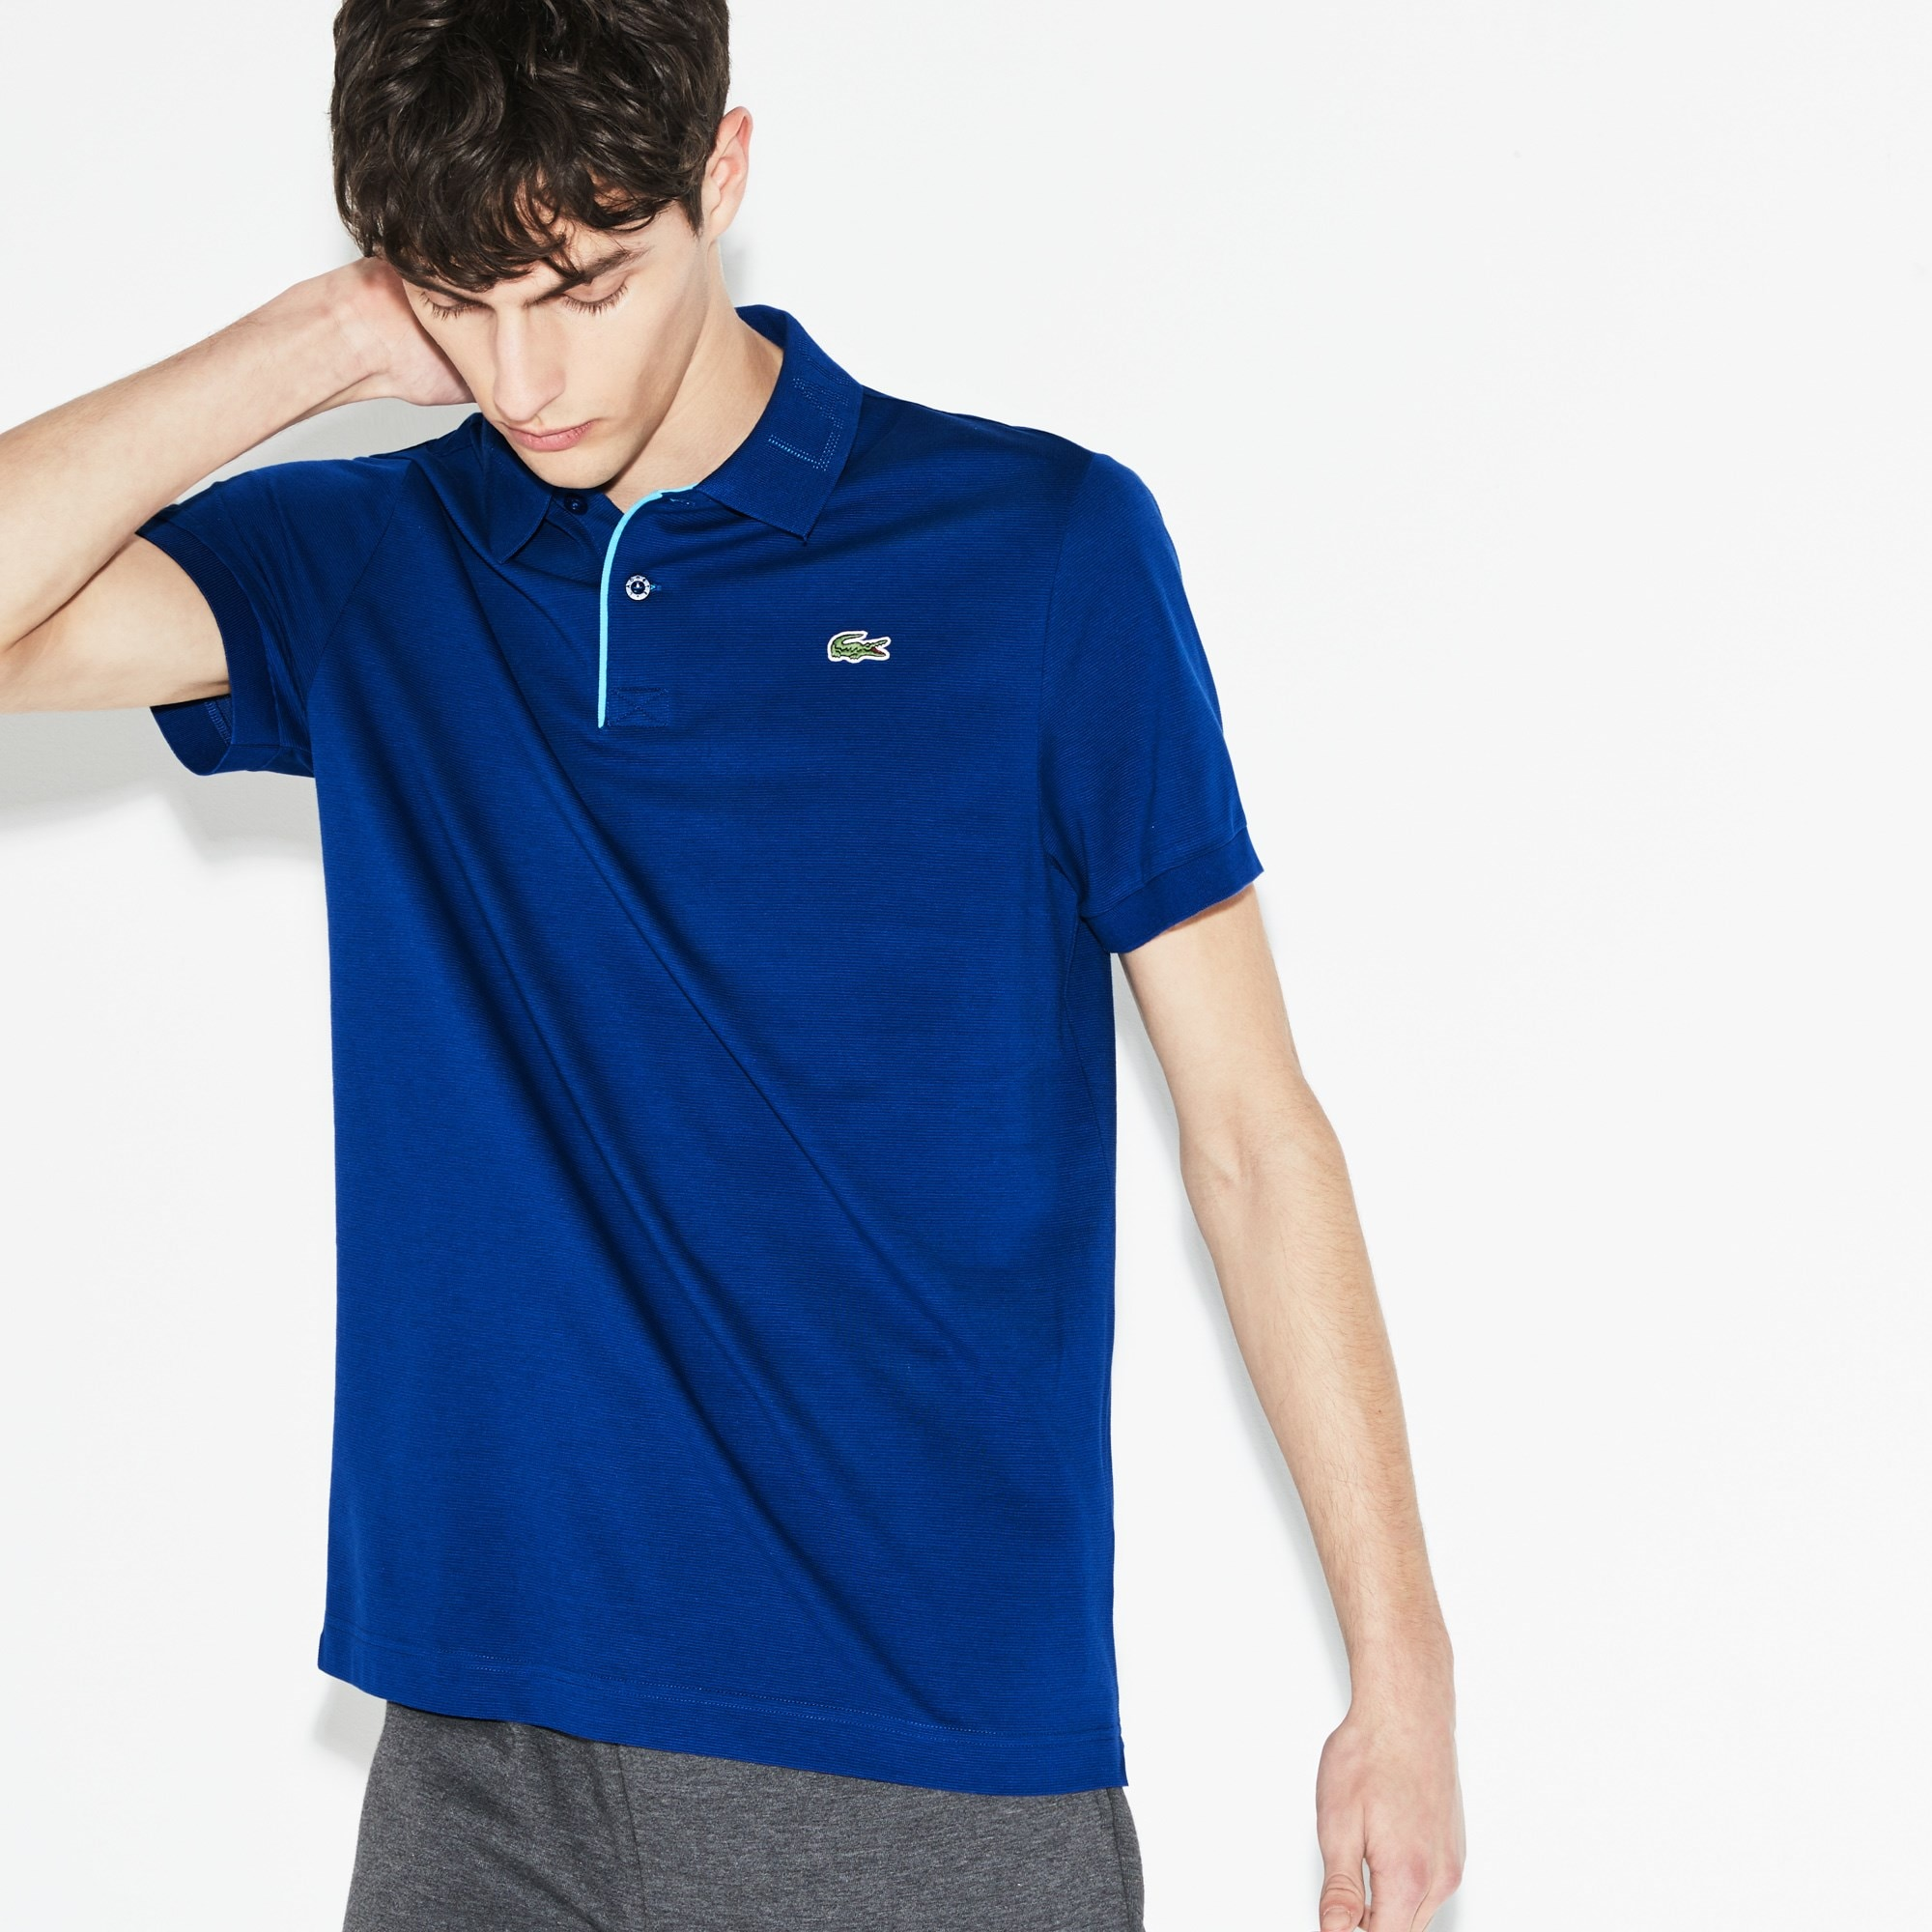 Men's Lacoste SPORT Print Collar Ultra-Light Cotton Tennis Polo Shirt